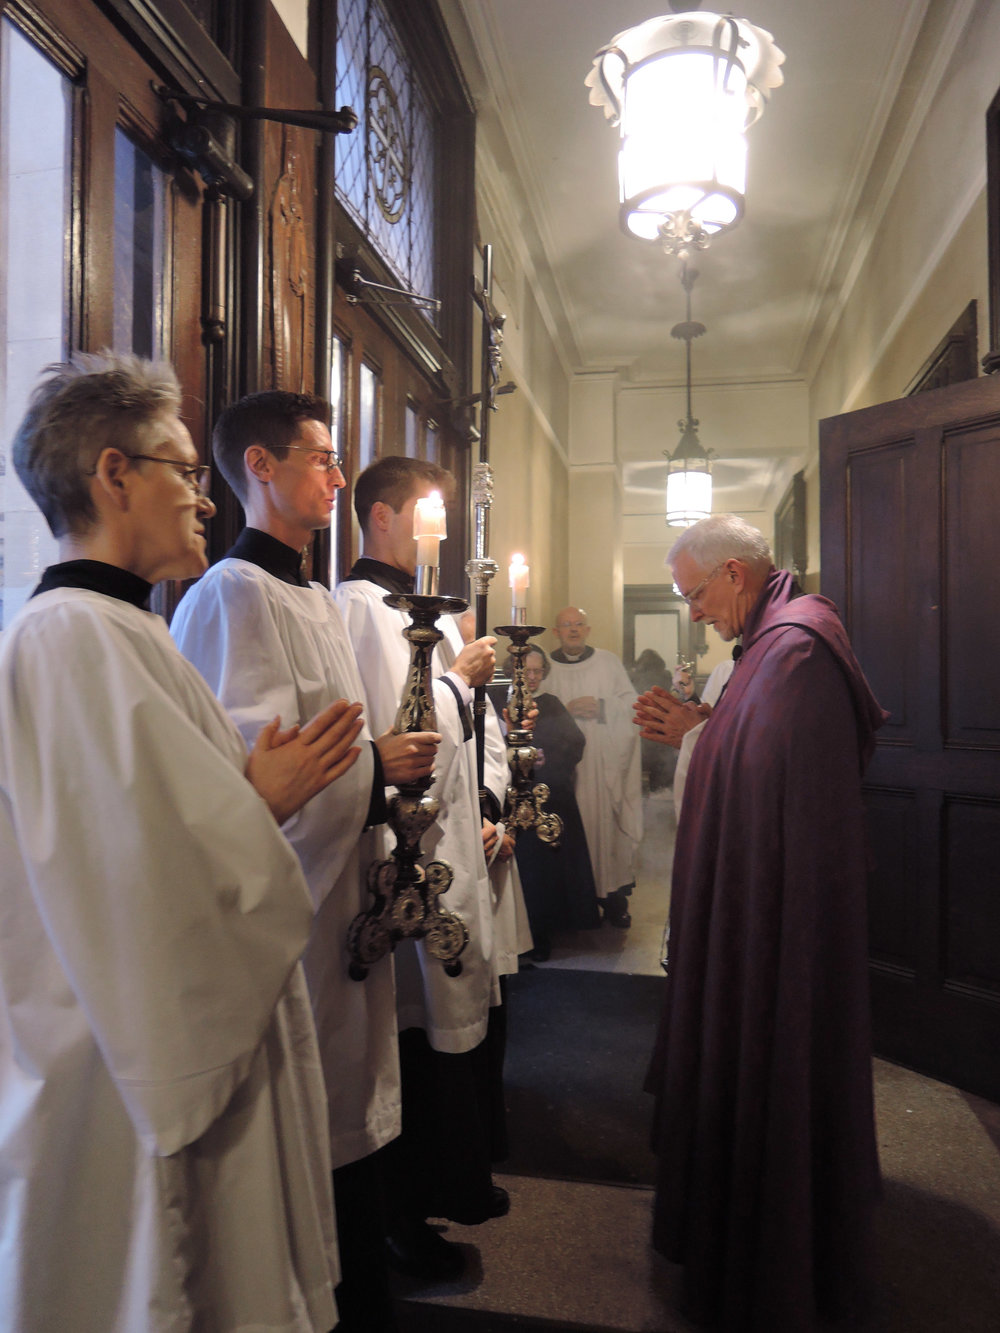 A Final Prayer after Evensong.